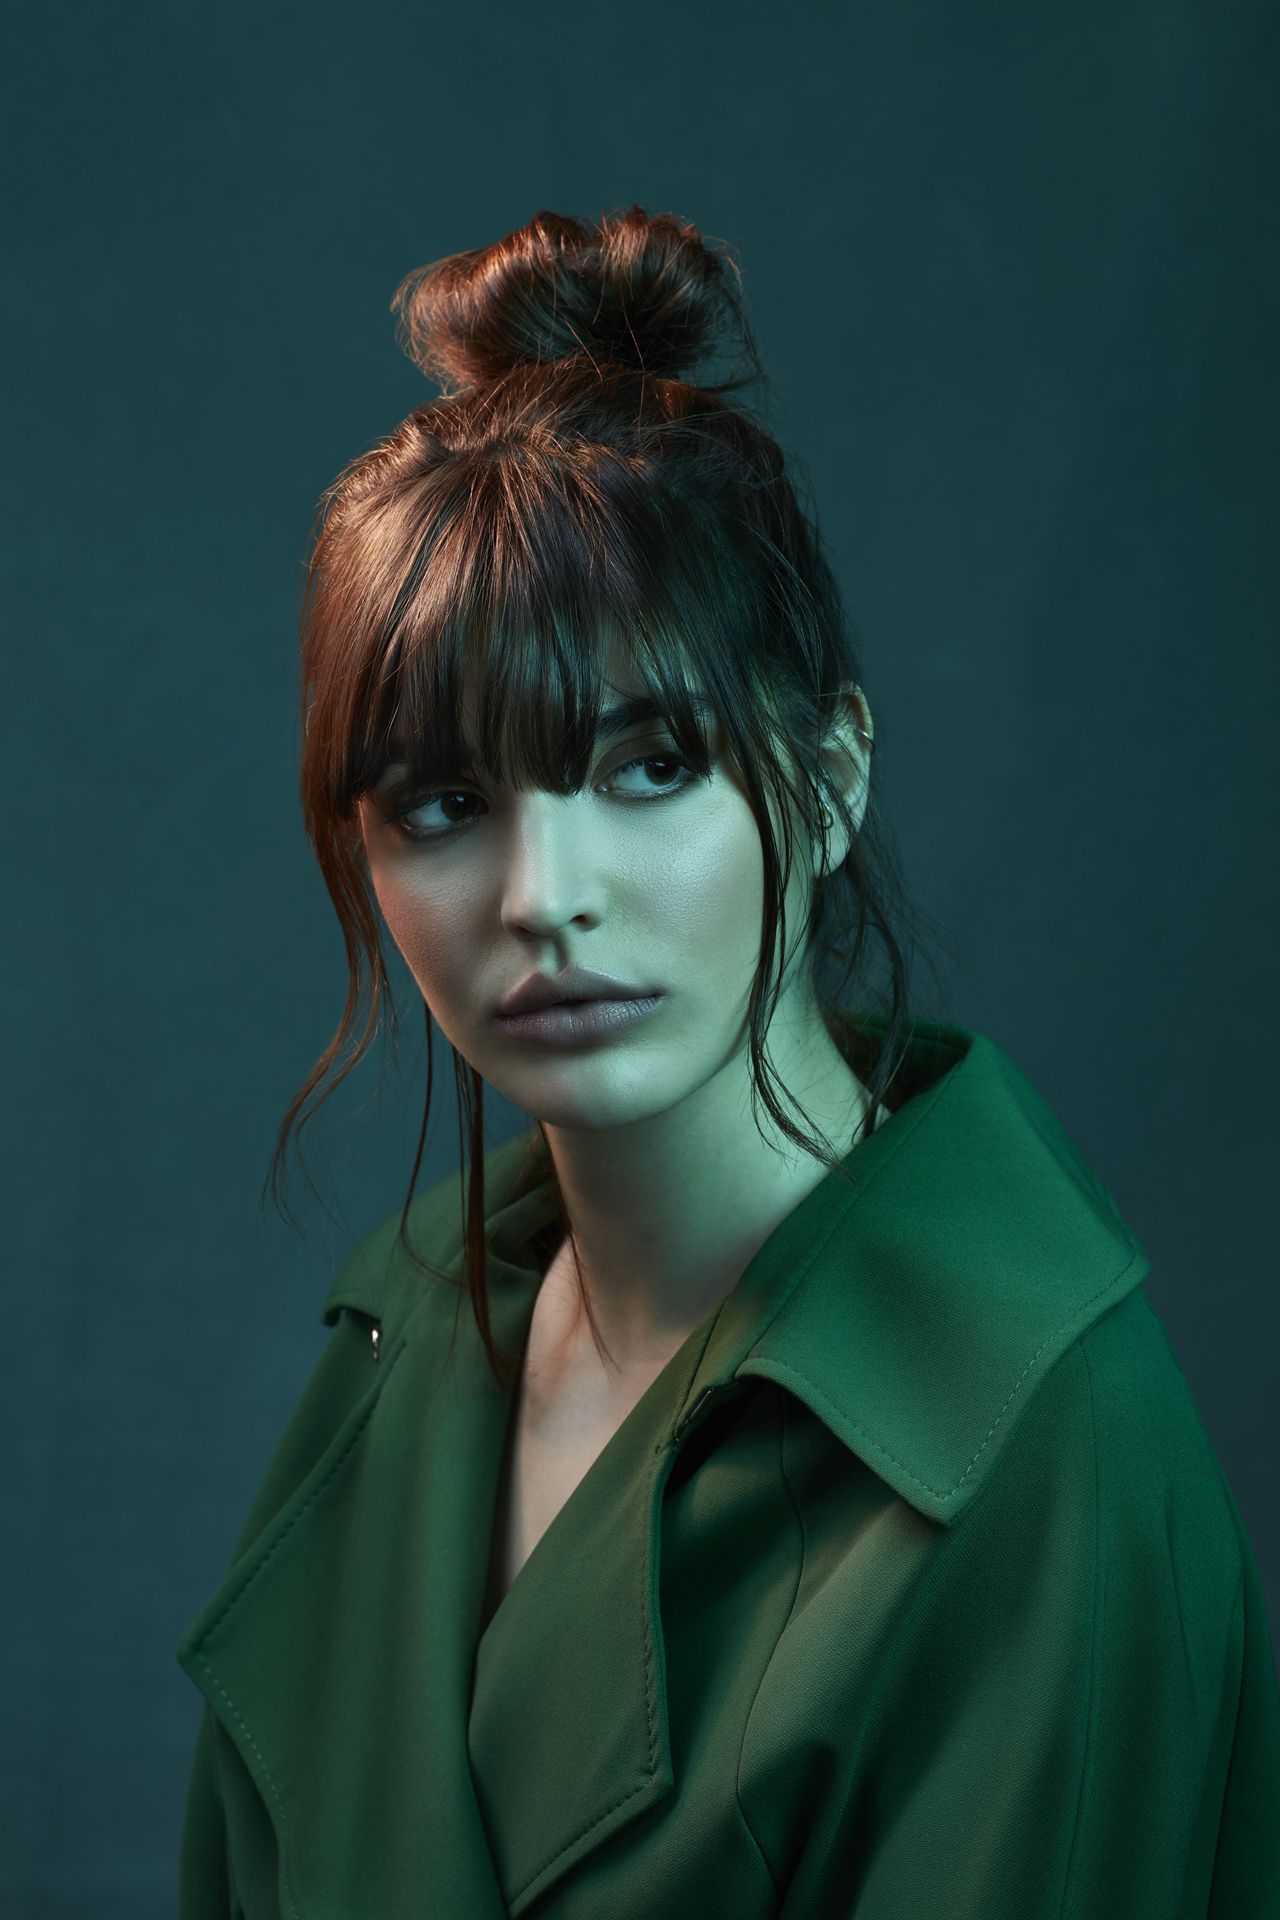 white woman looking pensive hair up wearing dark green blouse on dark green background and colored lighting by Simon Duhamel for creative project Introspect